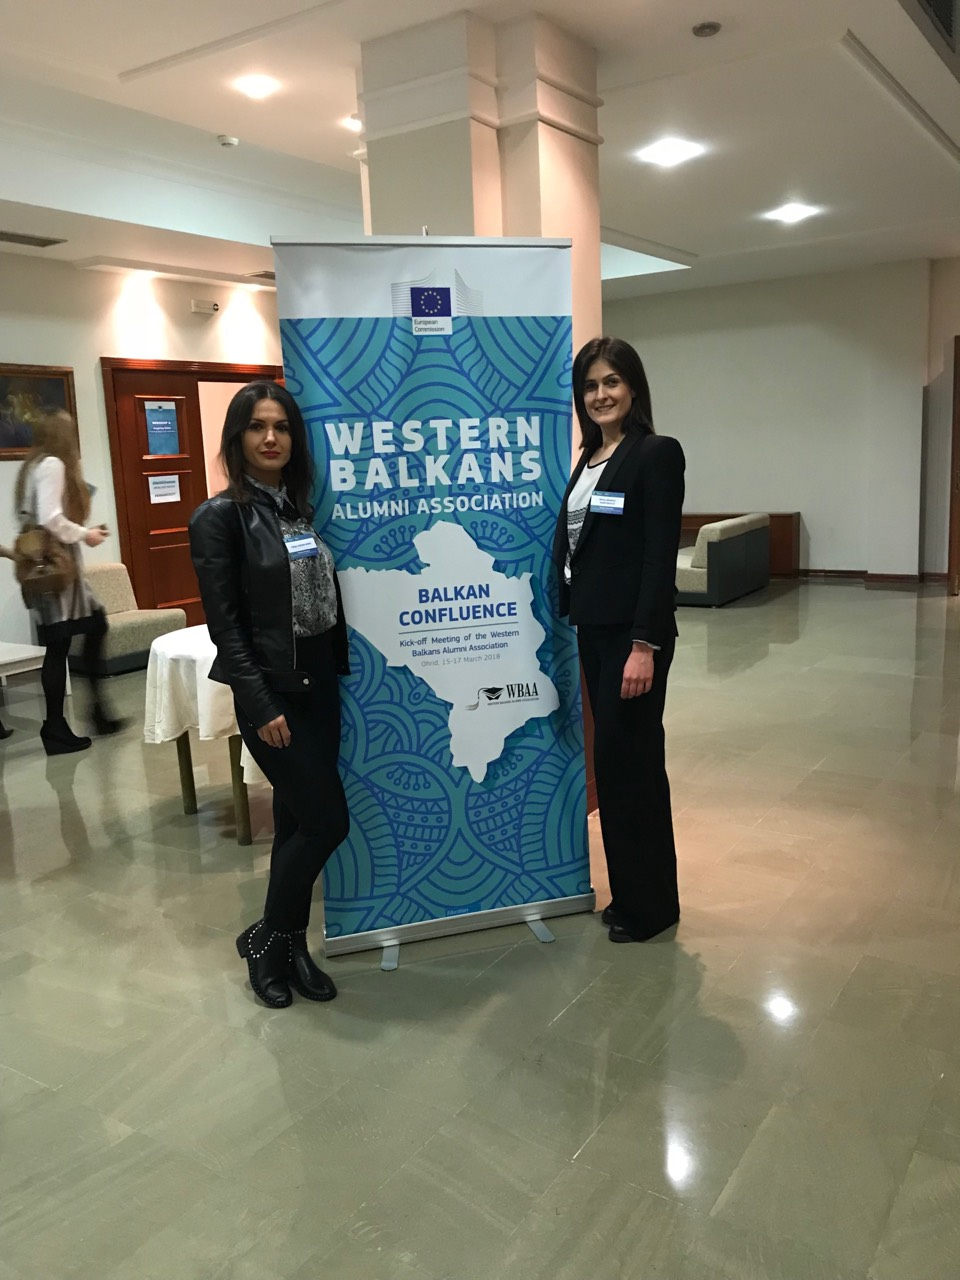 Balkan Confluence 15-17 March Ohrid Macedonia